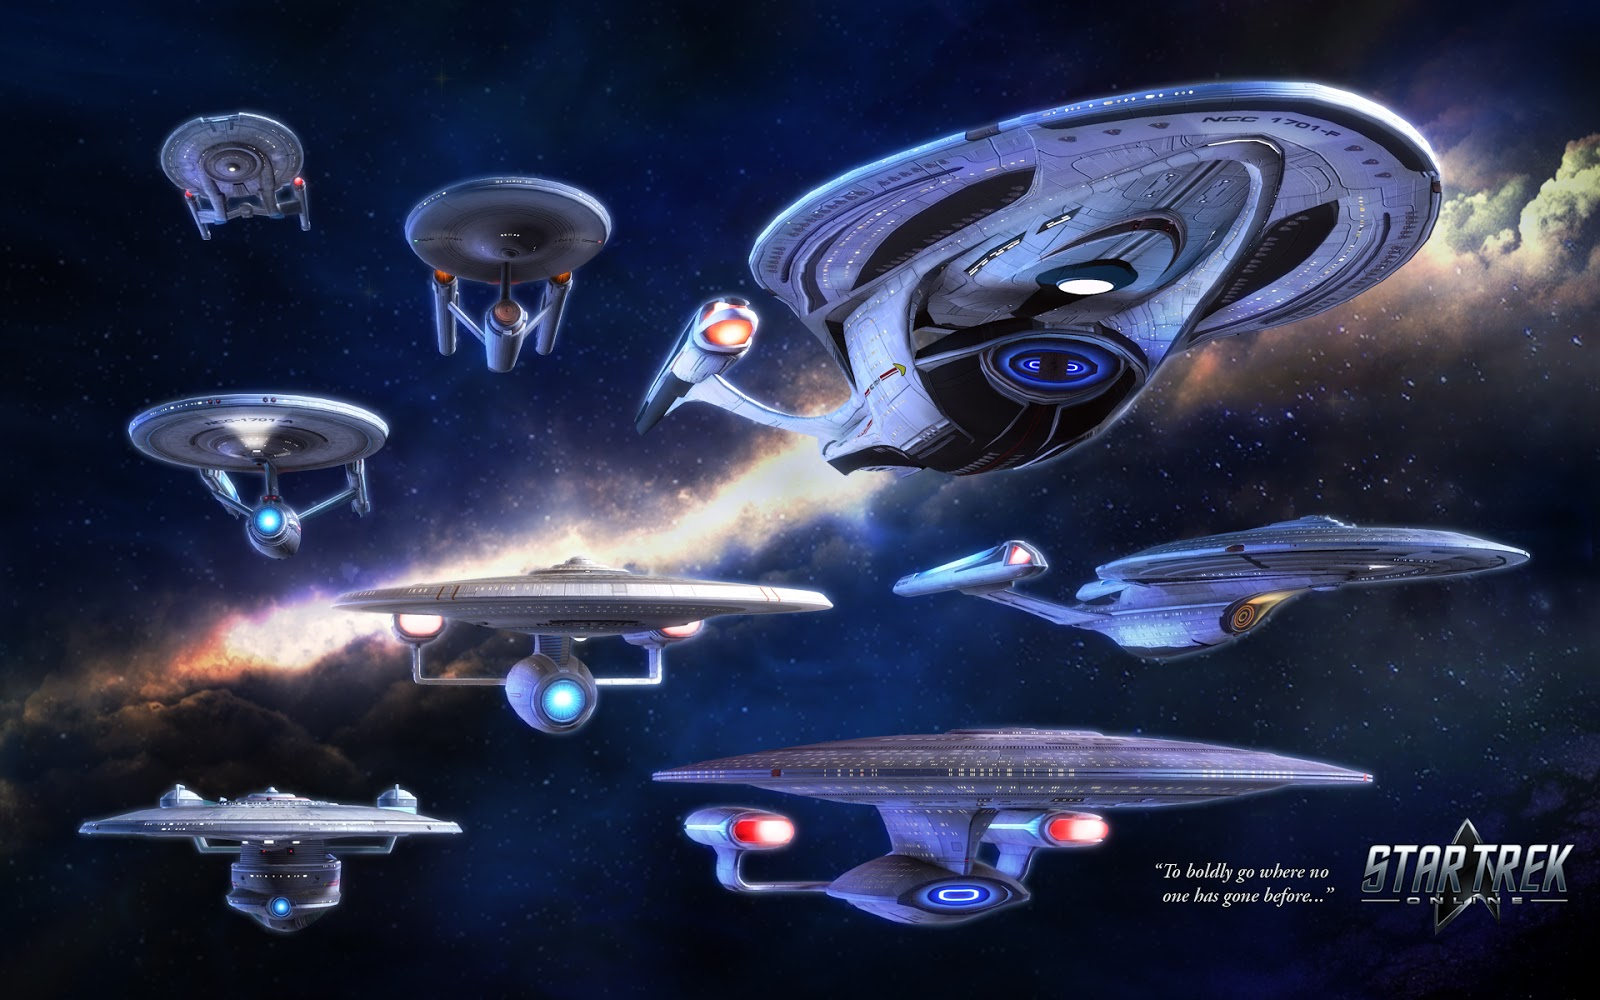 Star Trek Online Enterprises